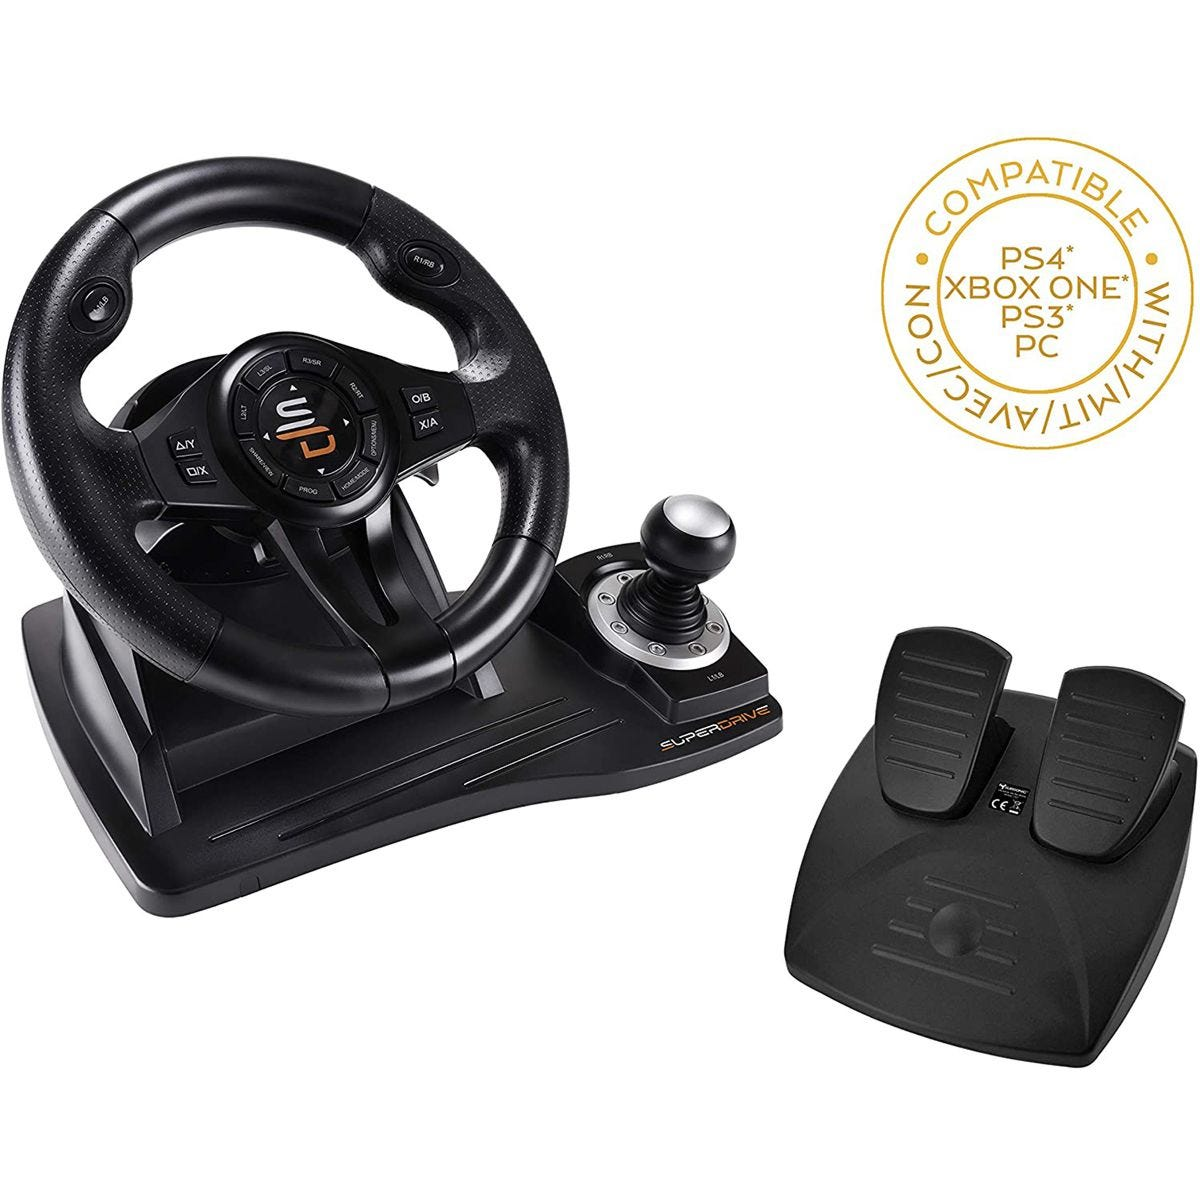 Superdrive GS500 Racing Wheel with Pedals for PS4, XBOX ONE, PC & PS3 - Black